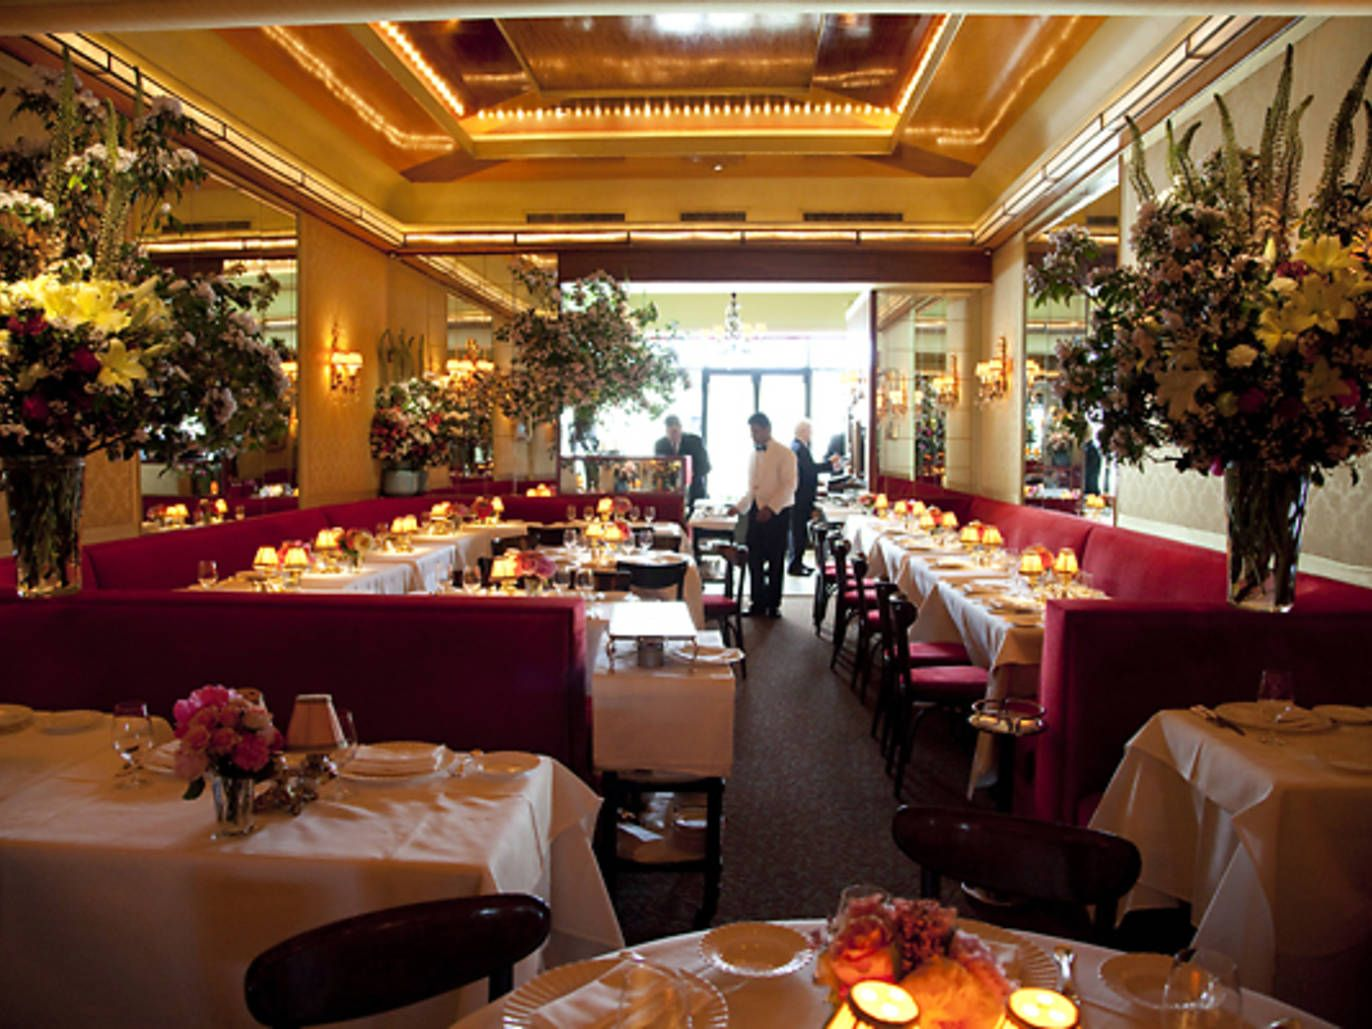 The best midtown restaurants in NYC (With images) Fun